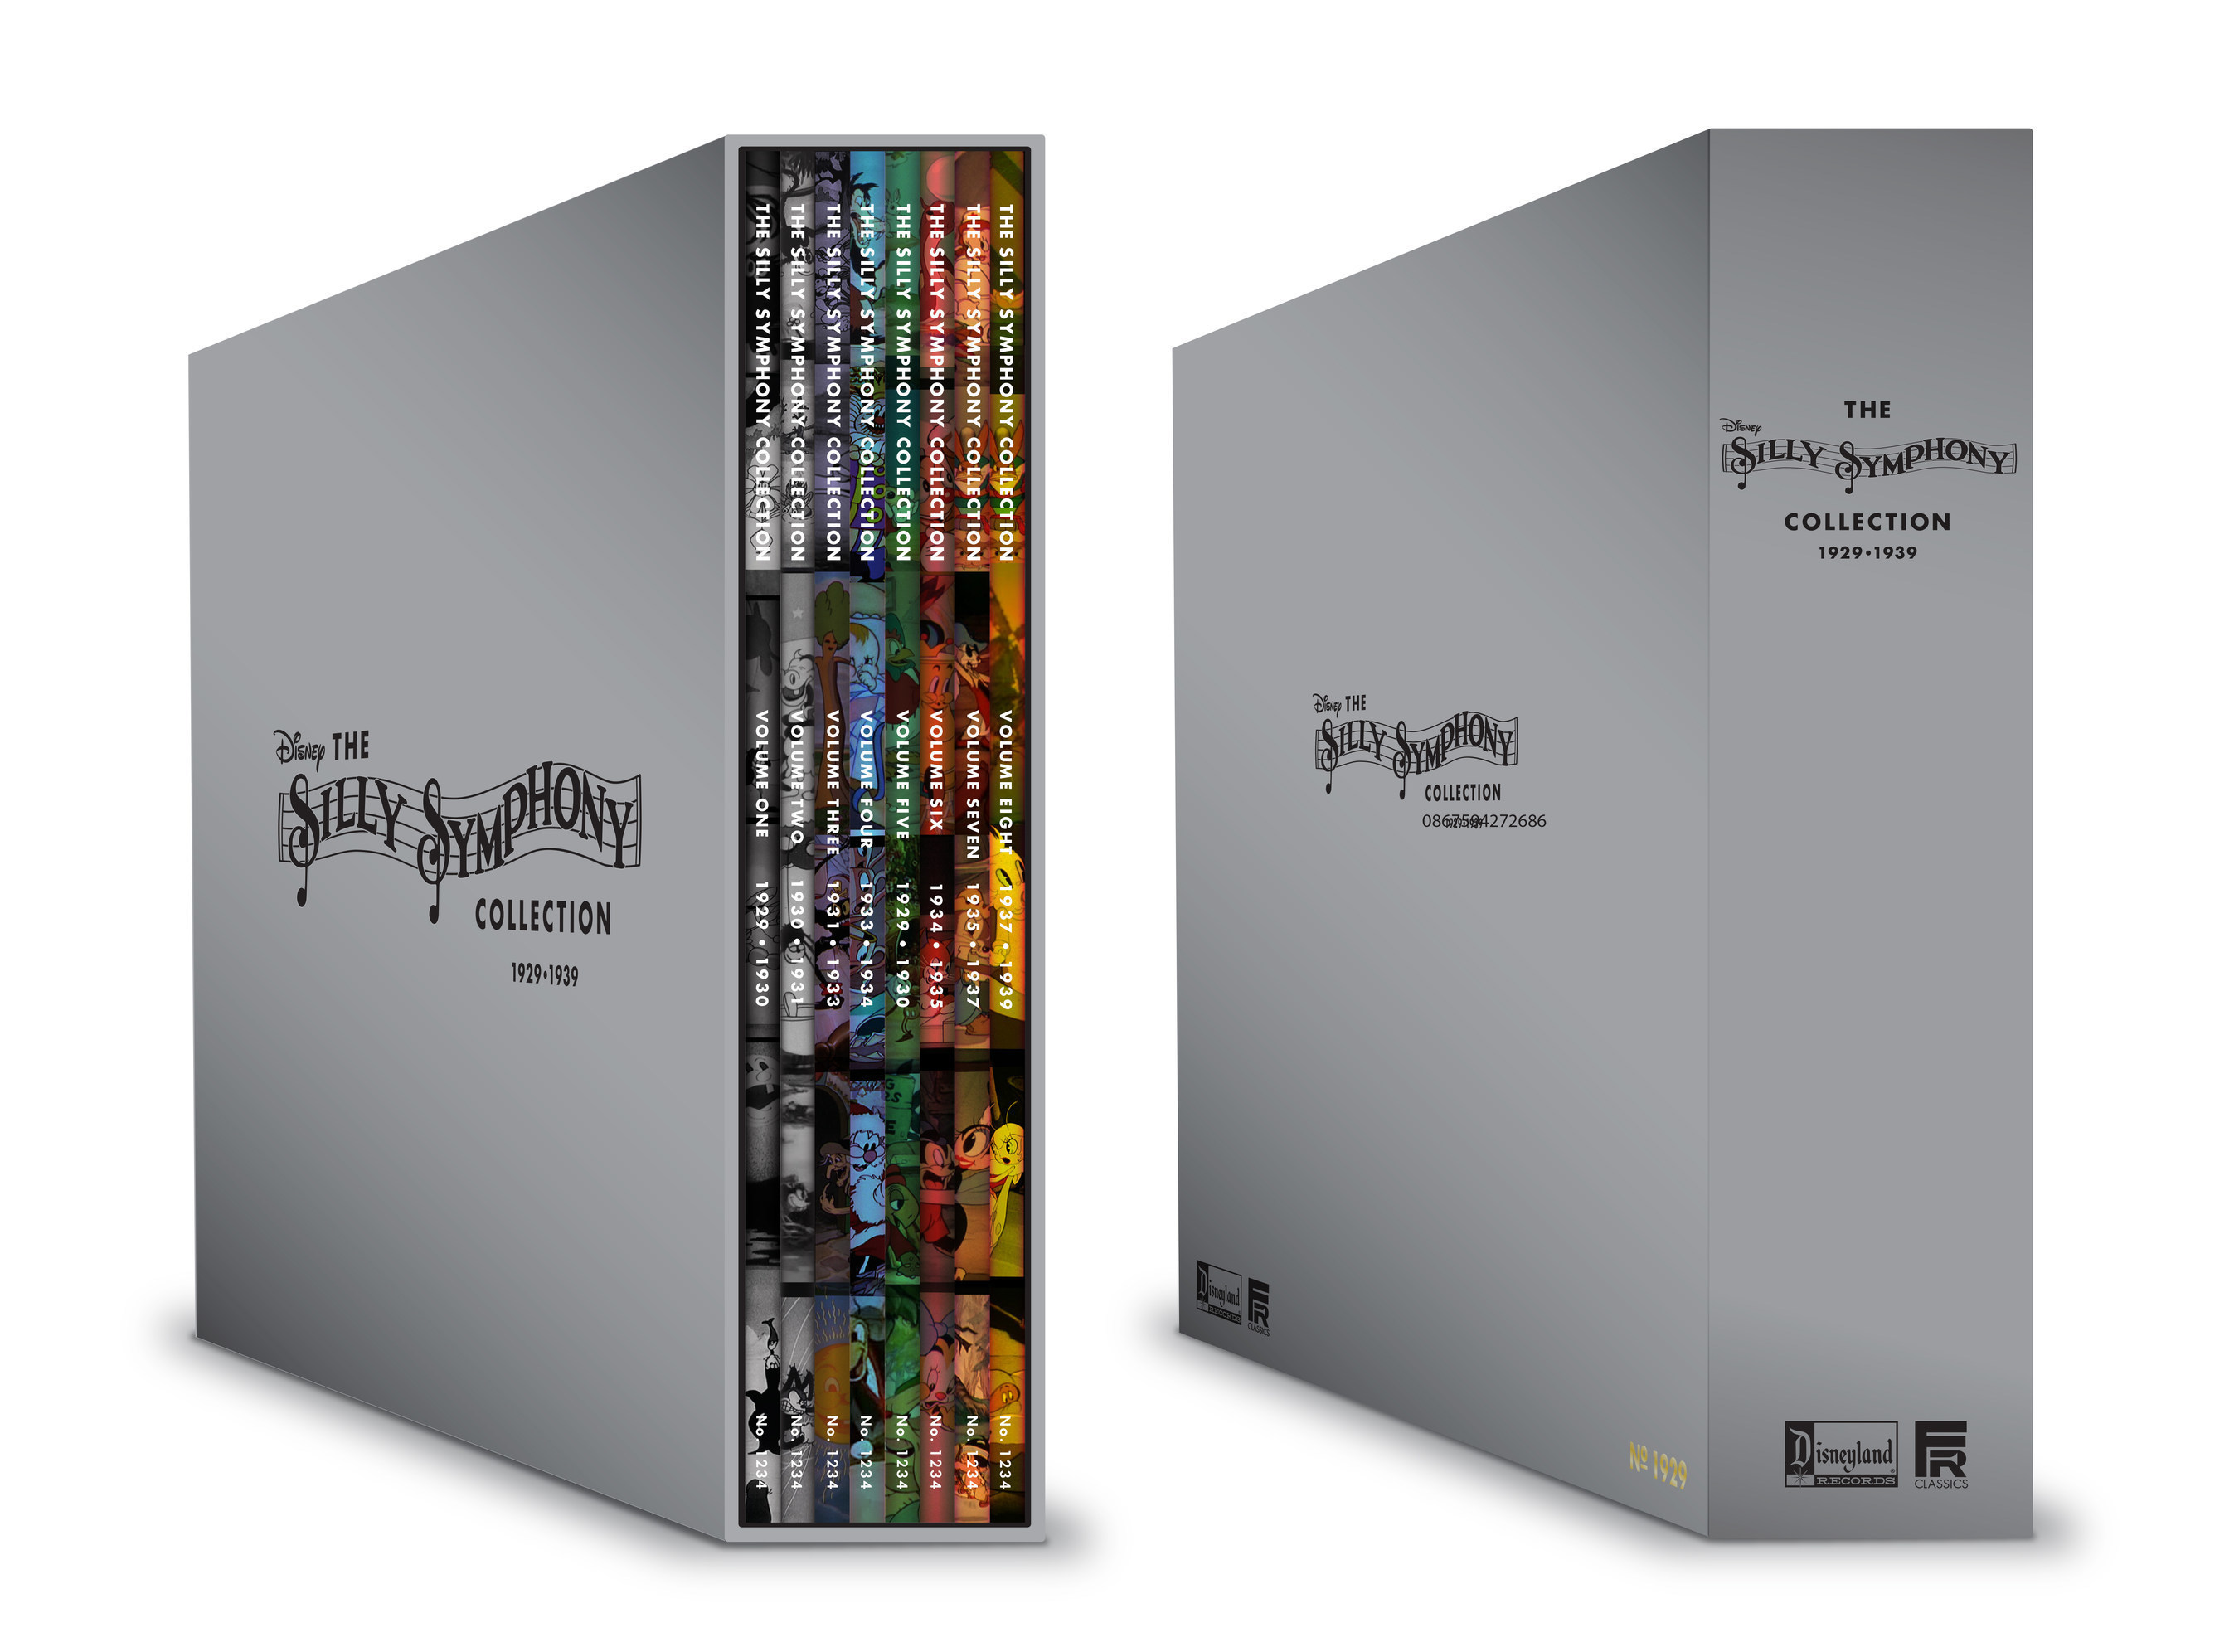 Walt Disney Records And Fairfax Classics Announce Details For The Silly Symphony Collection Box Set